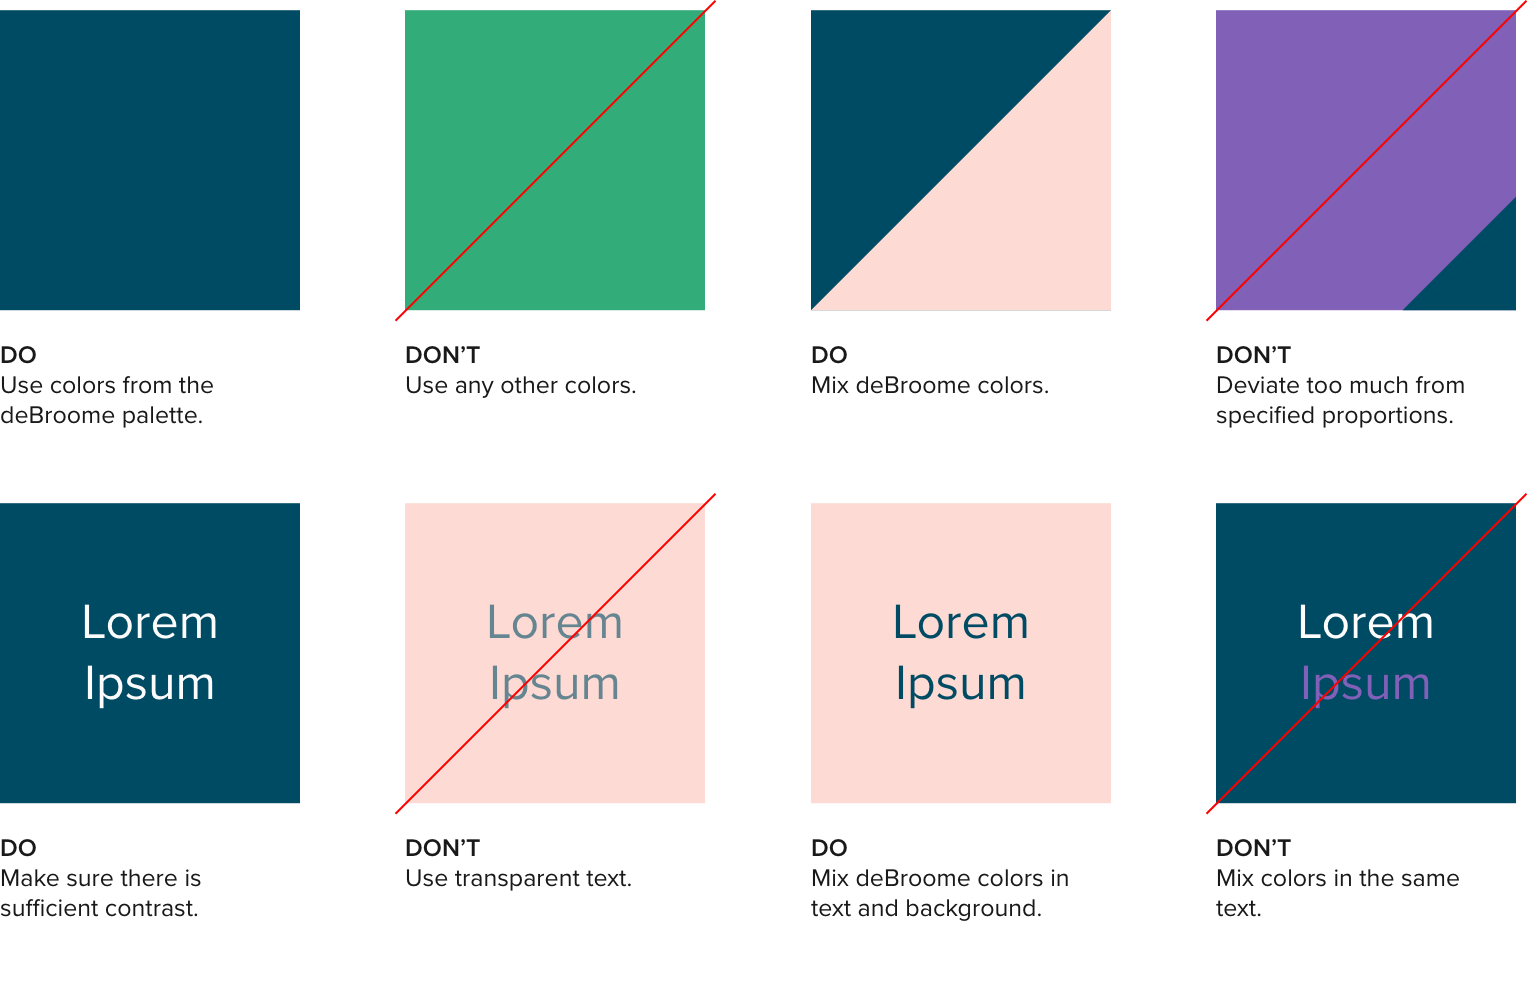 deBroome colors showed as examples on when to use and not to use the colors